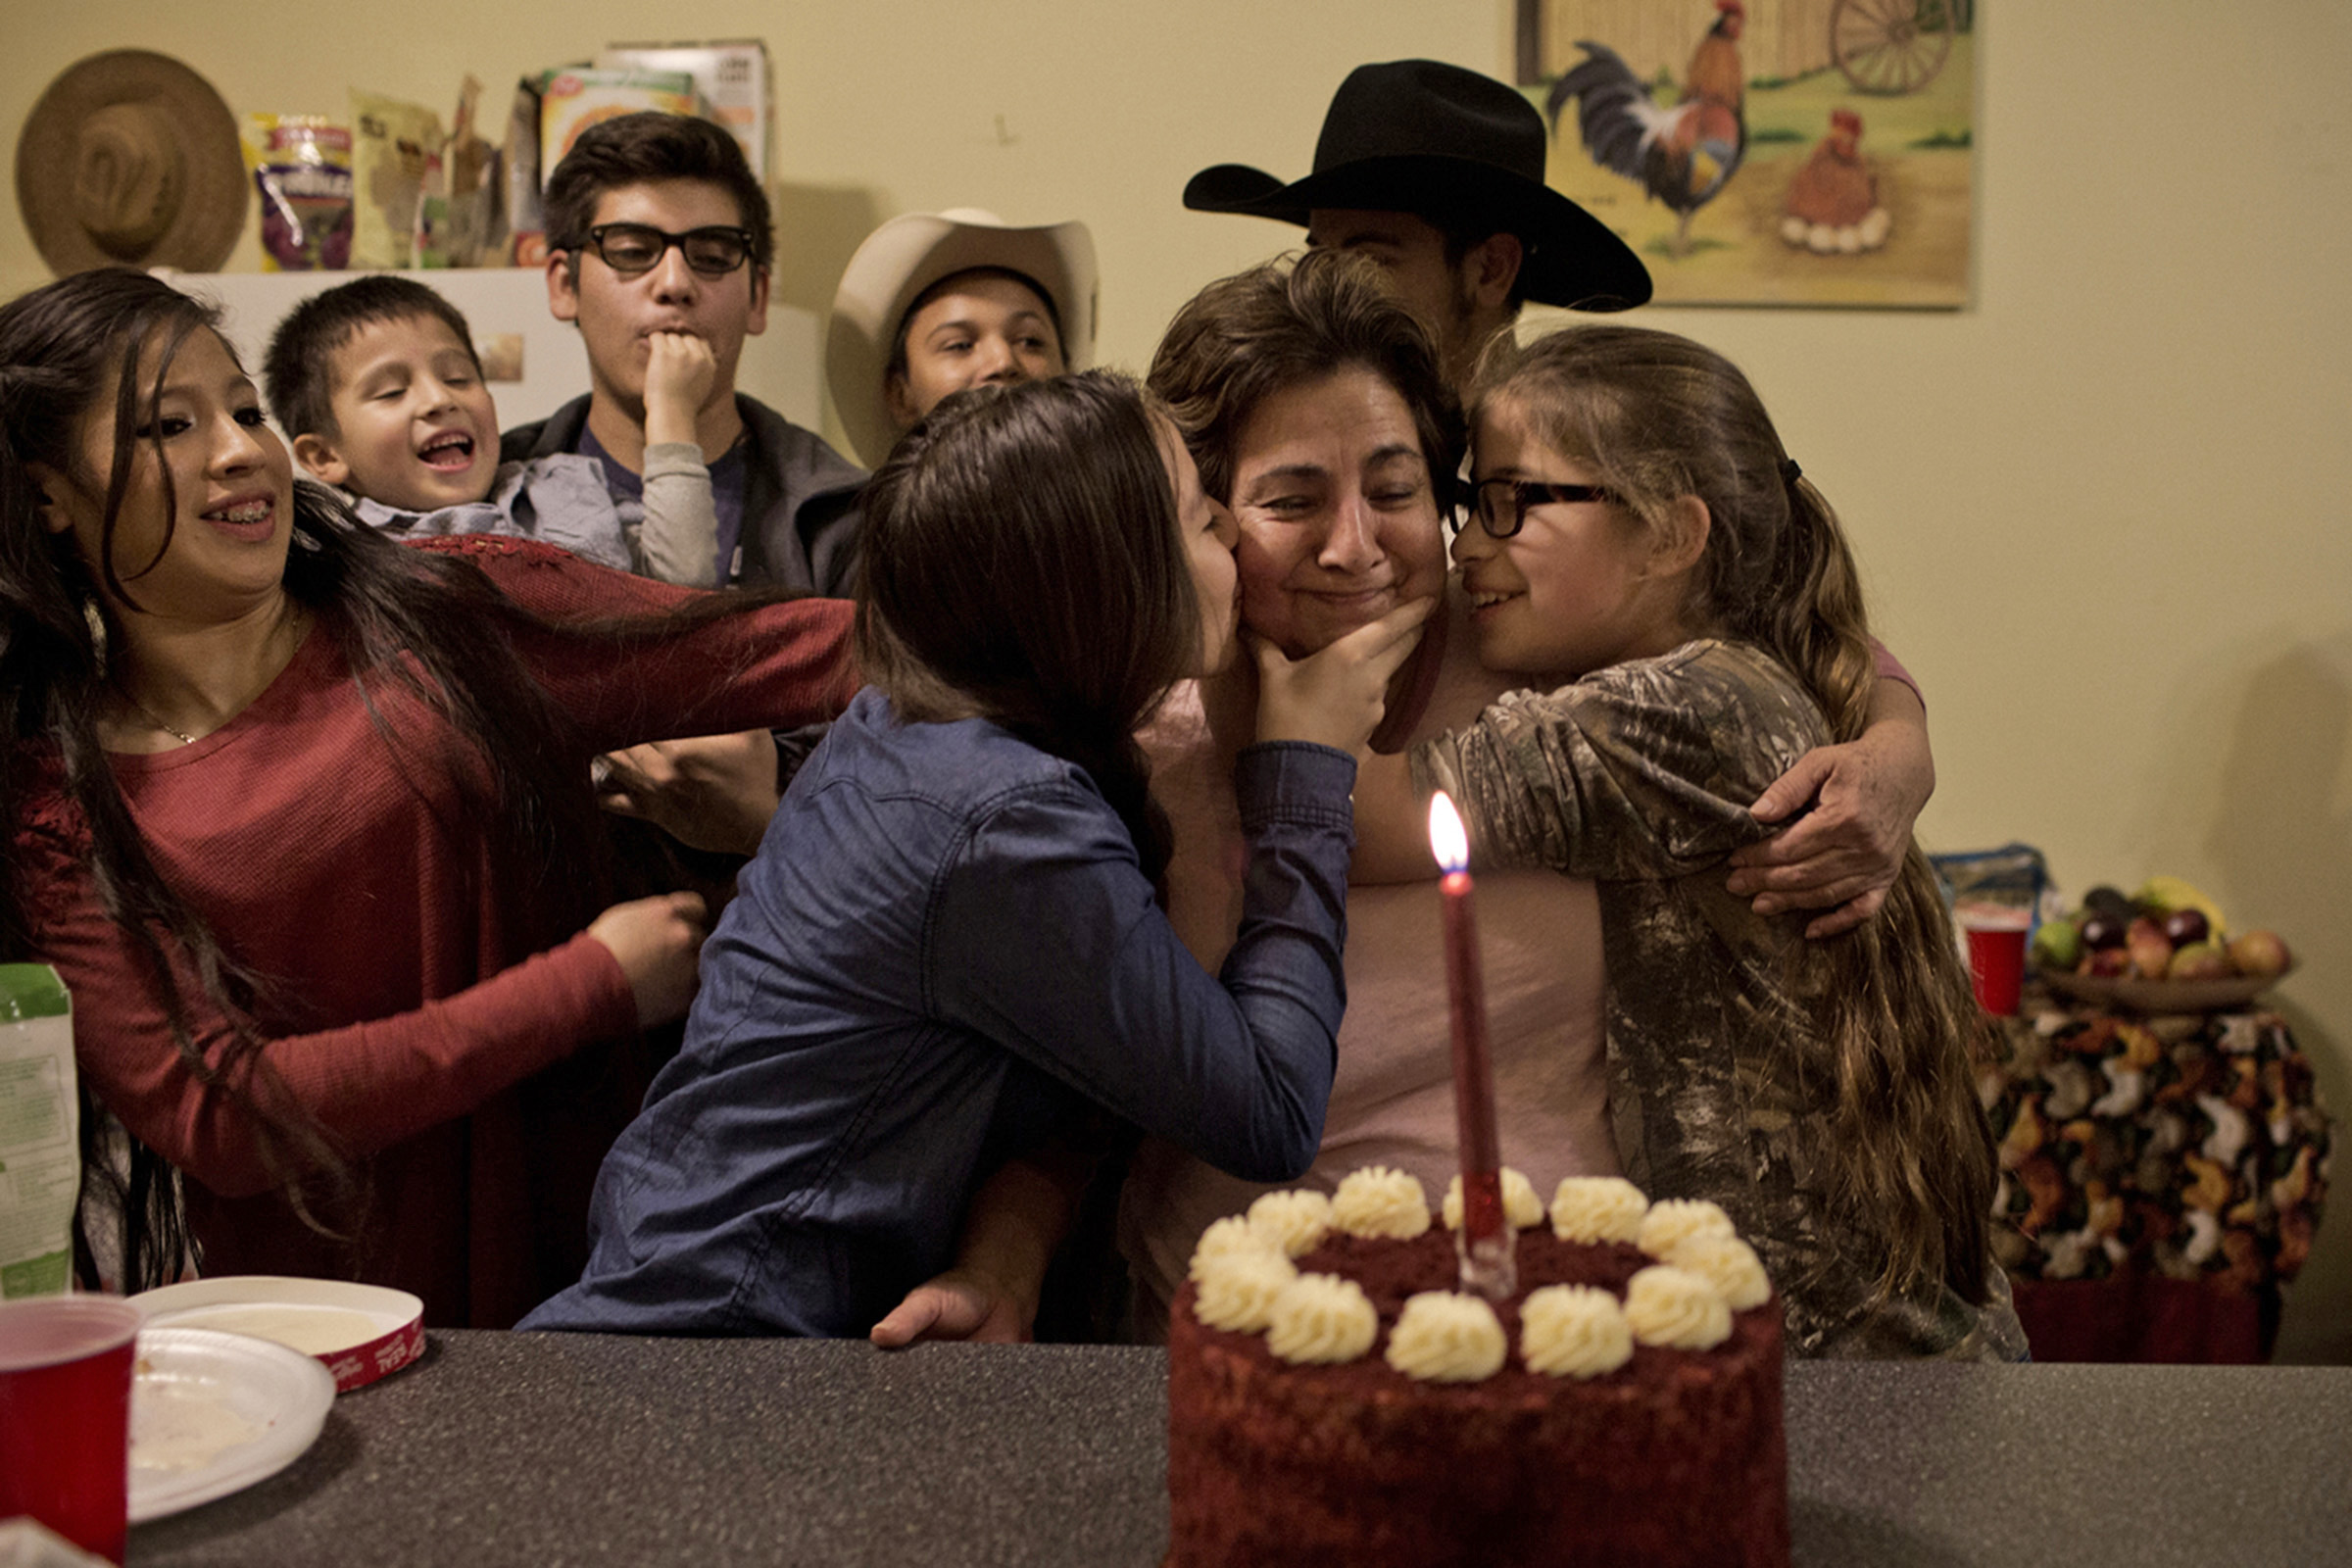 "The family celebrates at a surprise party for their grandmother, Elisa Barillas, at the family ranch in Bowling Green, Kentucky in January 2016. Barillas' grandchildren, Samantha Yamileth, 13, and Nayda Espinoza, 12, kiss her before she blows out the candle while the rest of the grandchildren sing ""Happy Birthday"" in Spanish. (Photo by Betina Garcia/GroundTruth)"